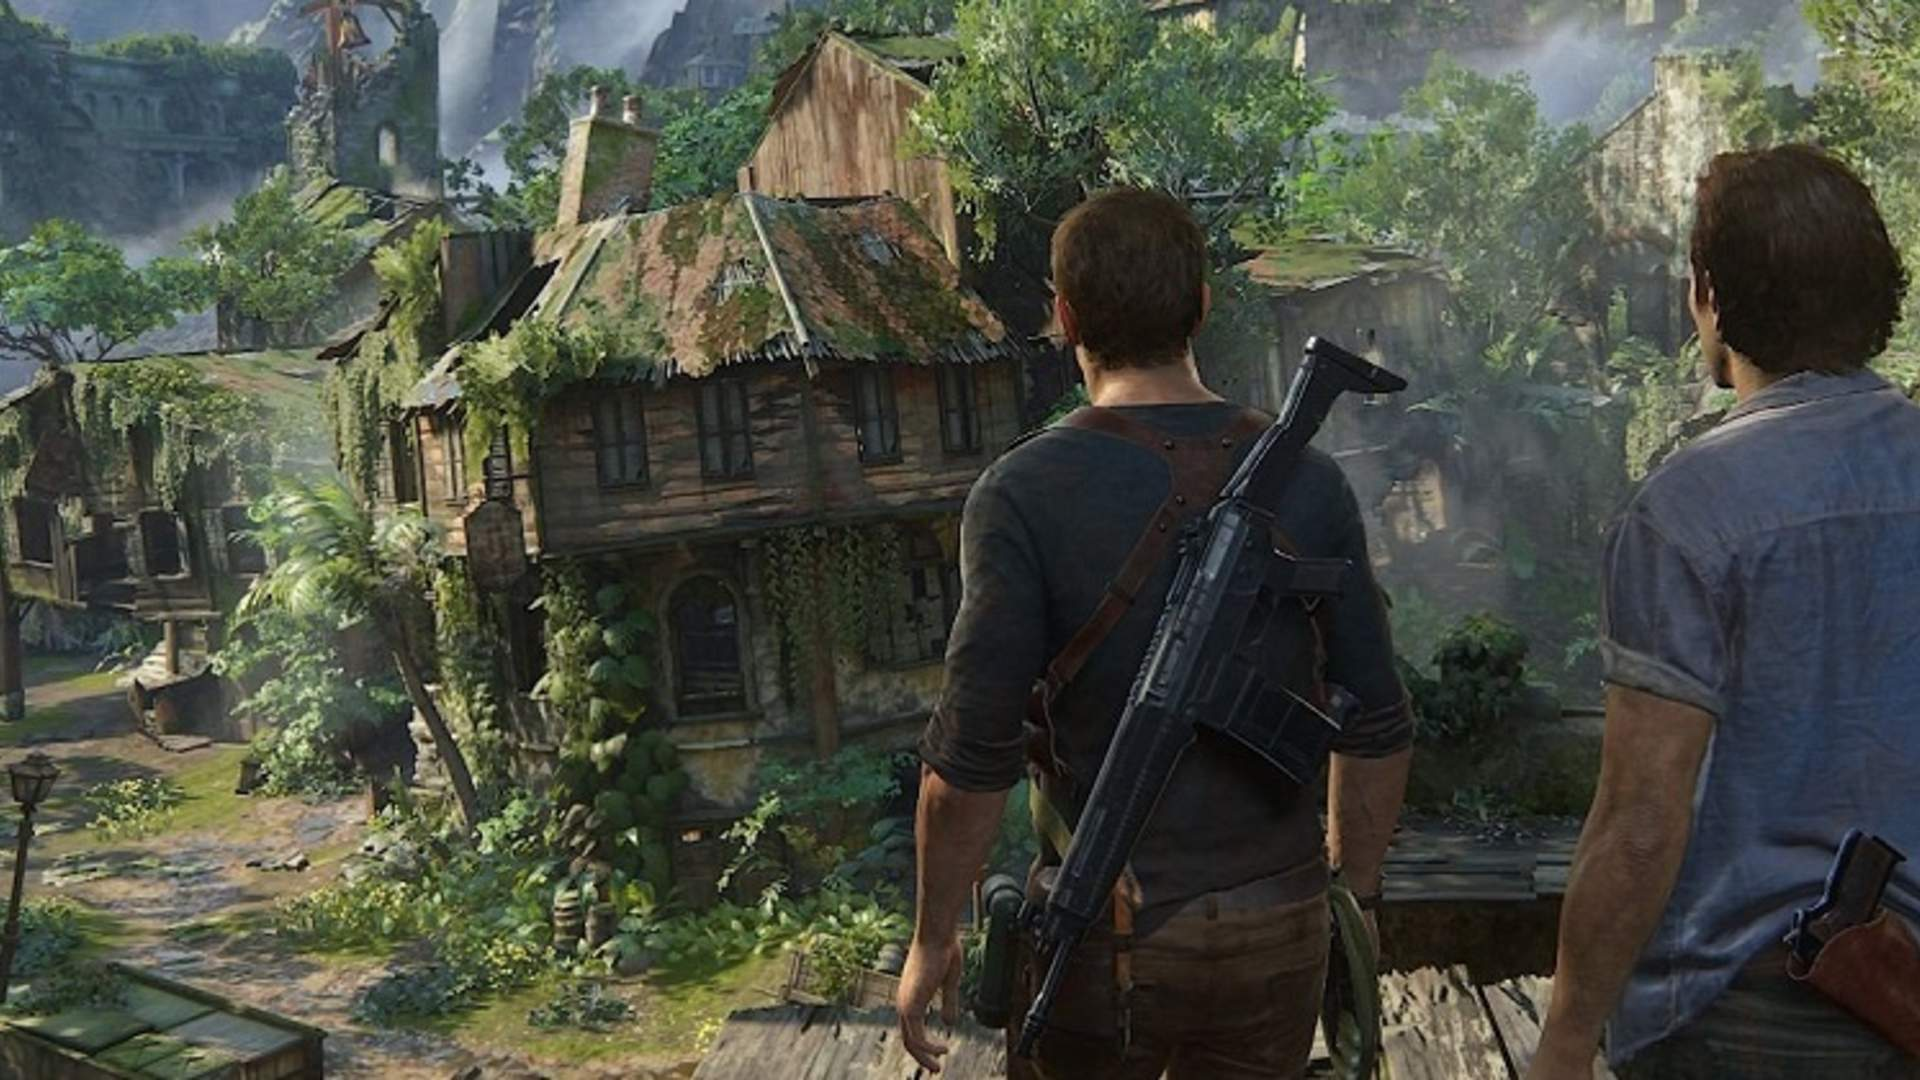 uncharted 4 - PS+ April 2020 Games Leaked Ahead of Official Announcement